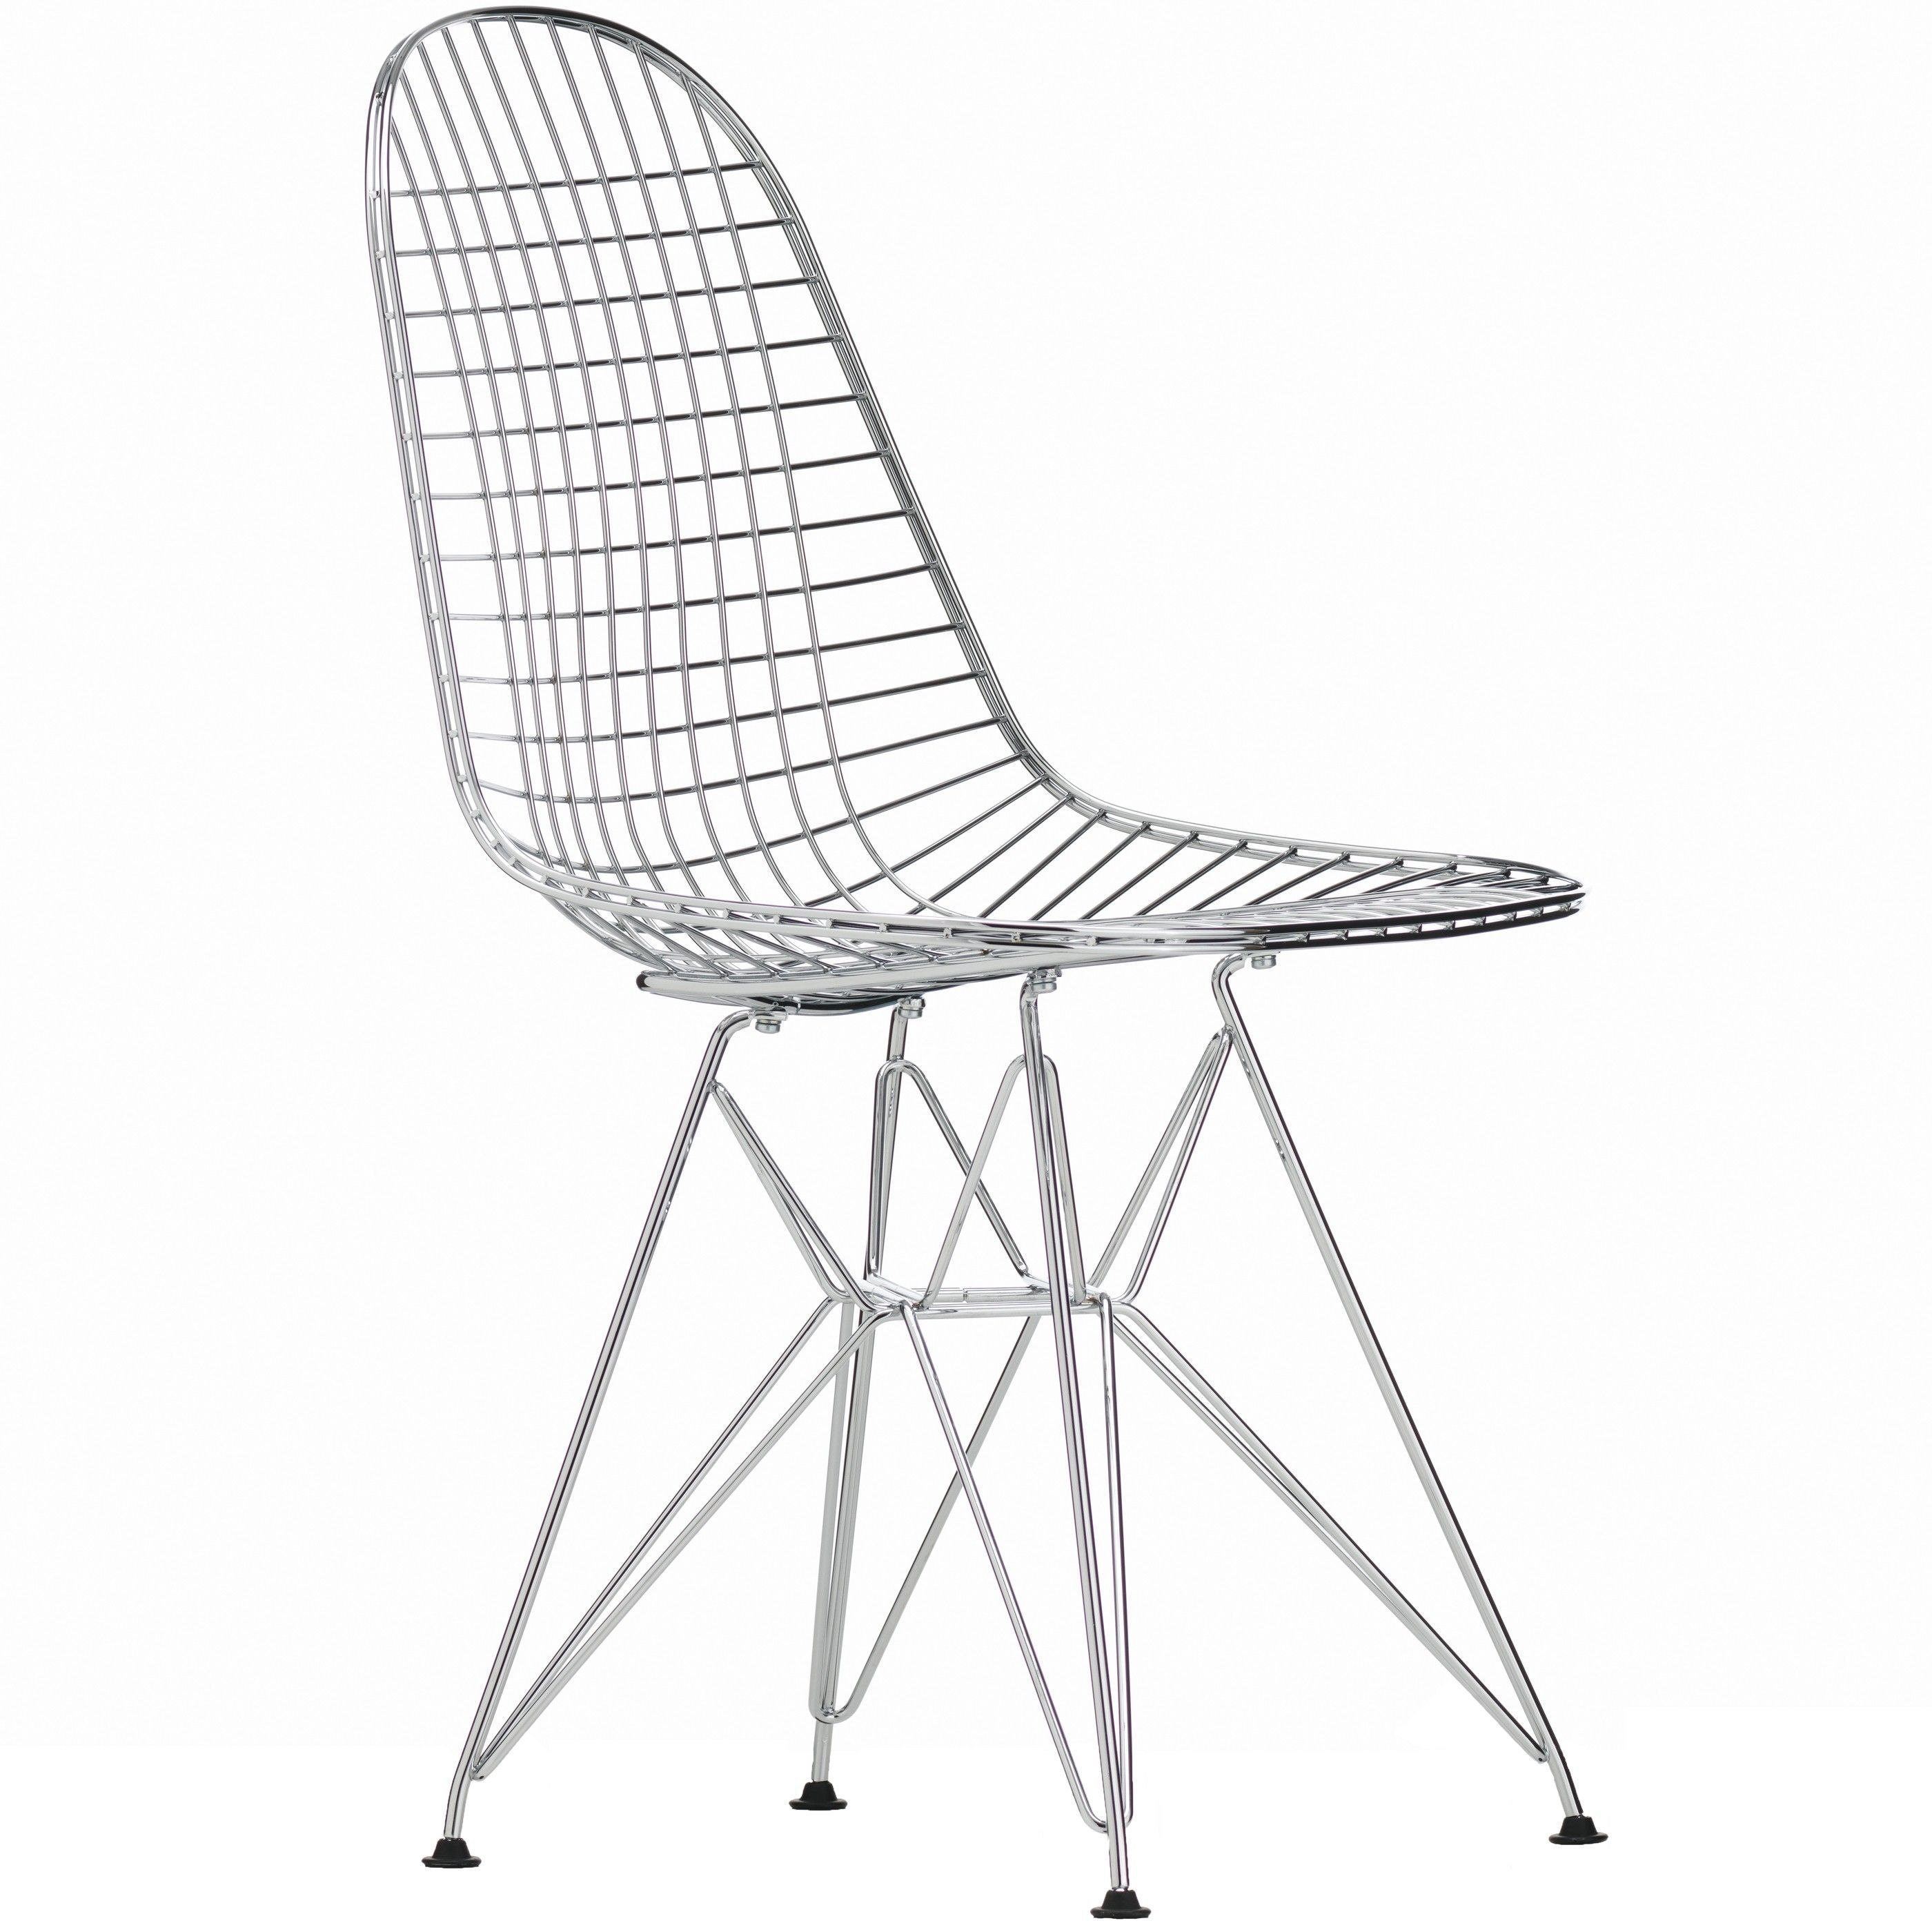 Vitra Eames Wire Chair DKR stoel oude zithoogte